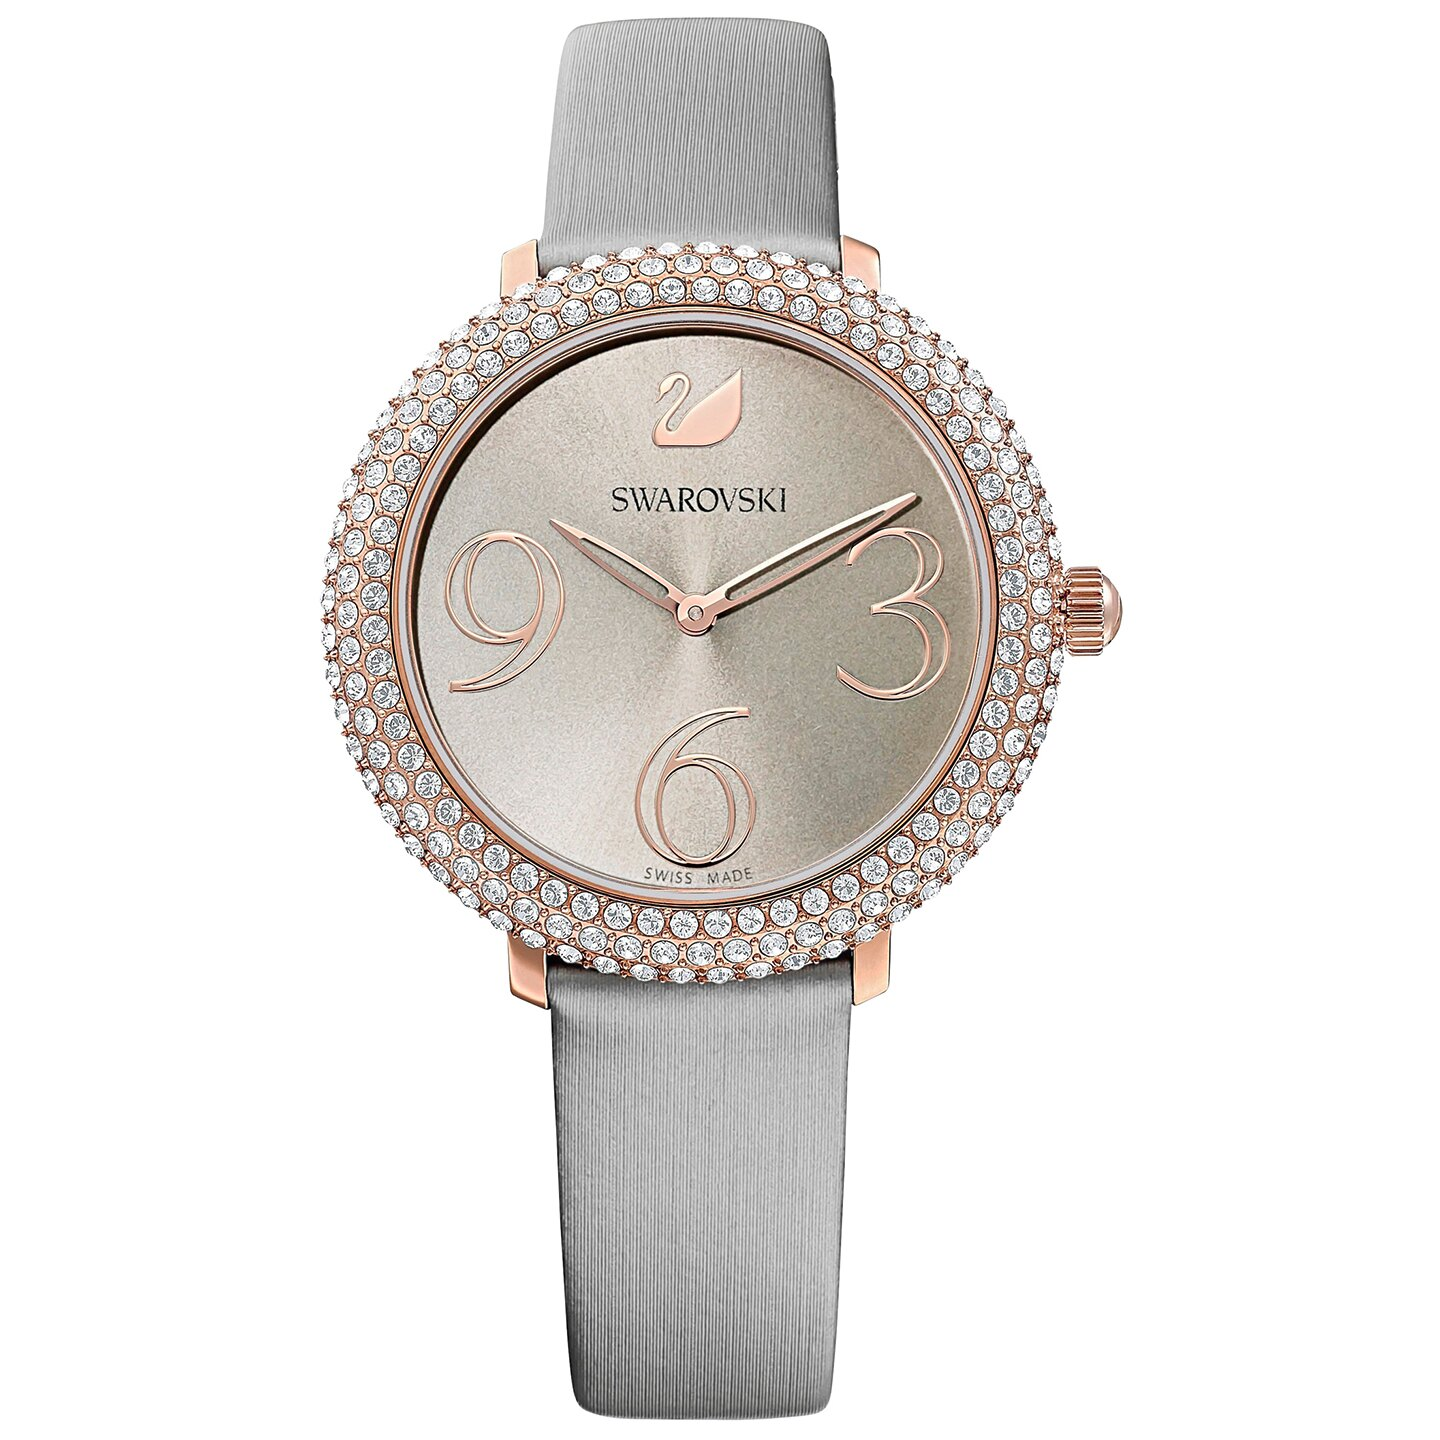 Swarovski Crystal Frost Watch - Leather Strap - Gray - Rose-gold Tone PVD - 5484067